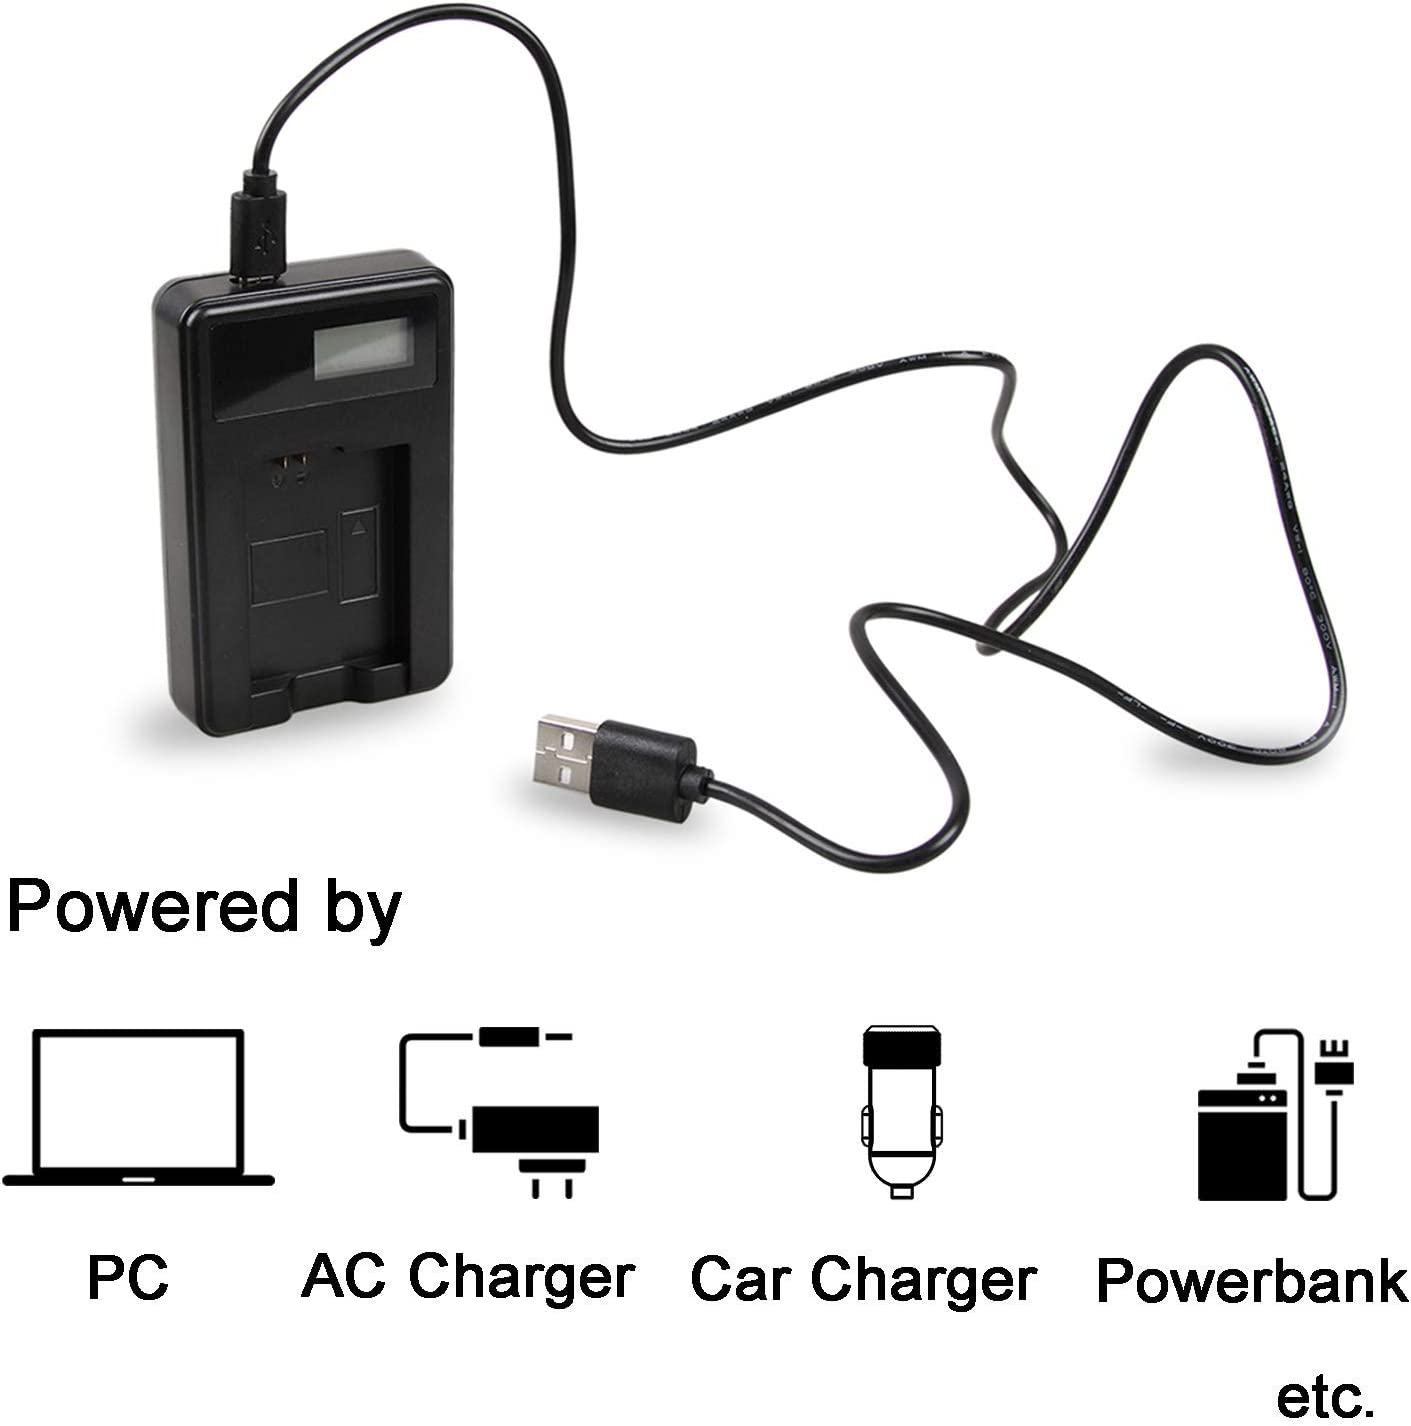 HDR-CX150E HDR-CX155 AC Supply Power Adapter Charger for Sony HDR-CX130 HDR-CX150 HDR-CX130E HDR-CX155E Handycam Camcorder